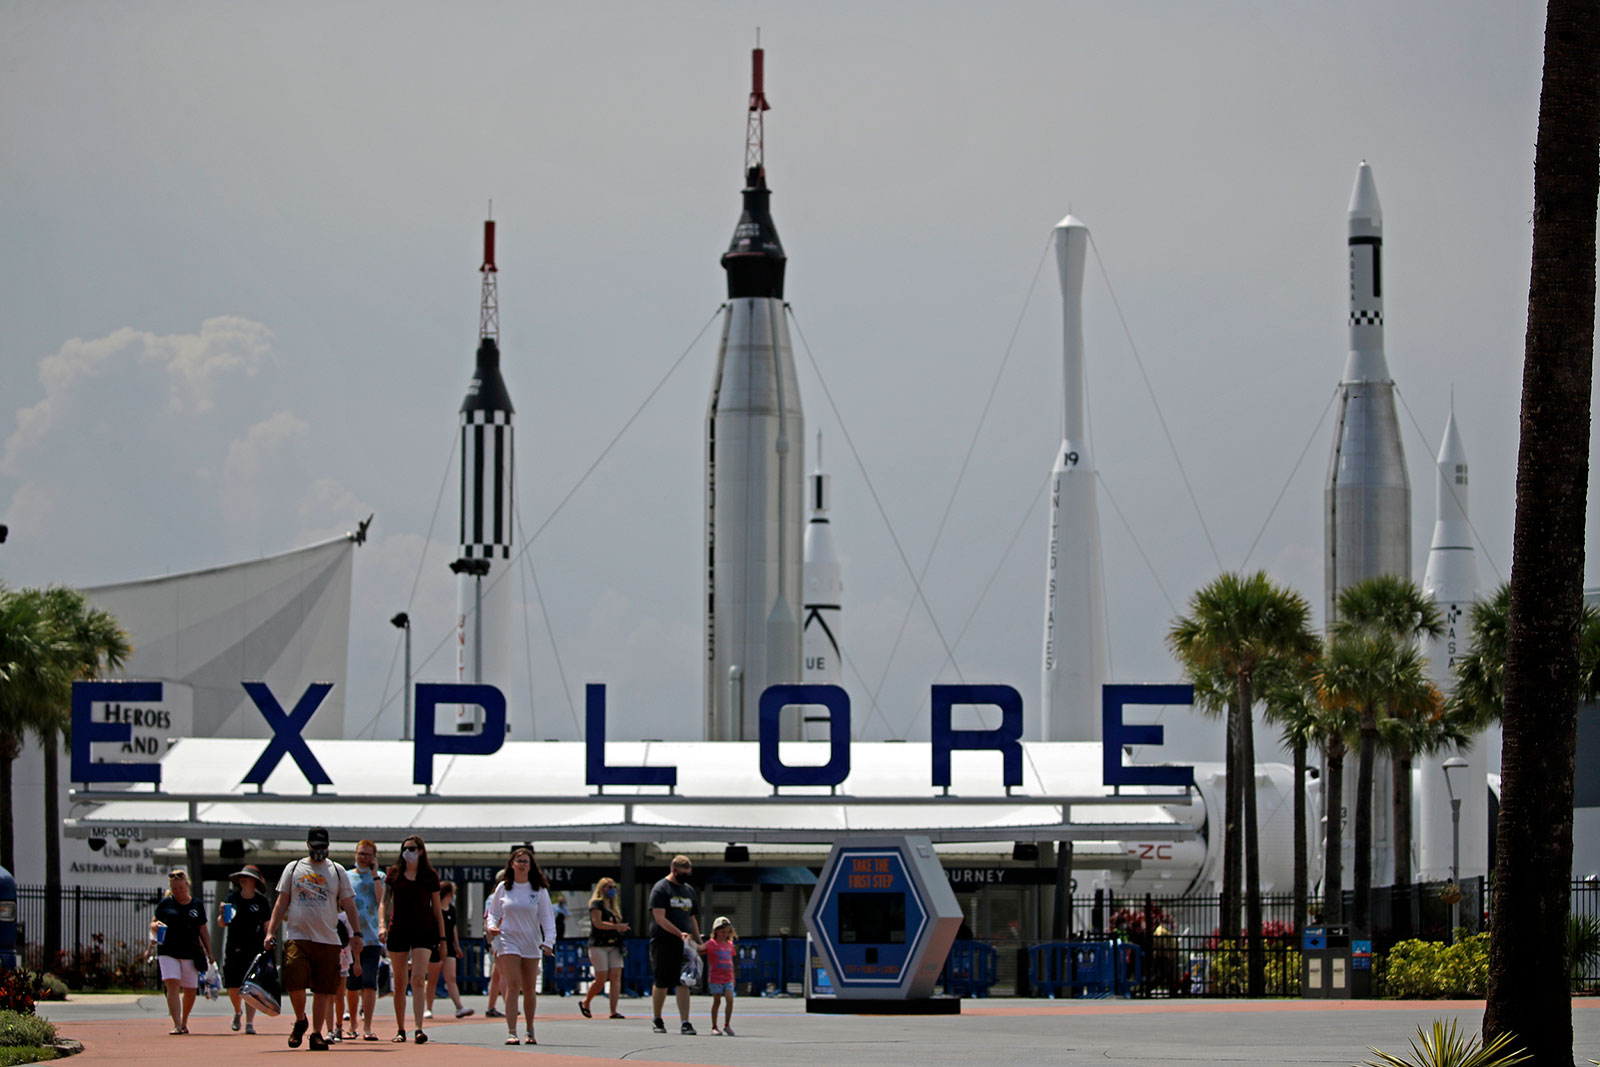 People walk through the Kennedy Space Center Visitor Complex hursday, May 28, 2020, at Cape Canaveral, Fla. The center reopened today after closing March 16 due to the coronavirus pandemic. (AP Photo/Charlie Riedel)